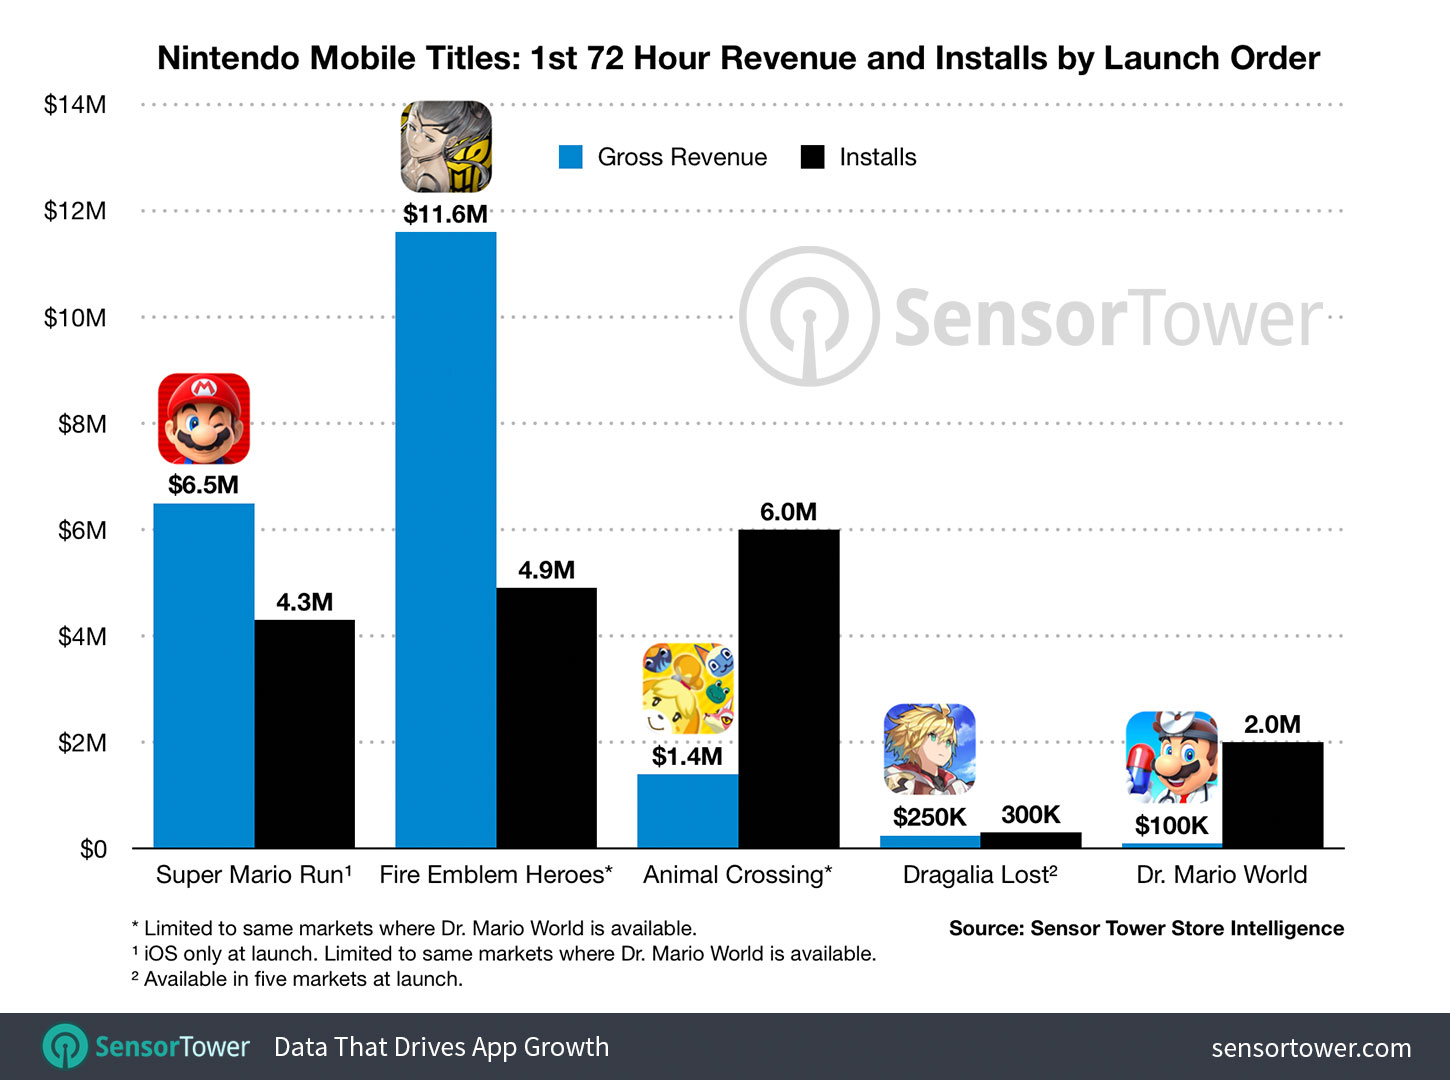 Nintendo Mobile Titles Revenue Primeiras 72 Horas